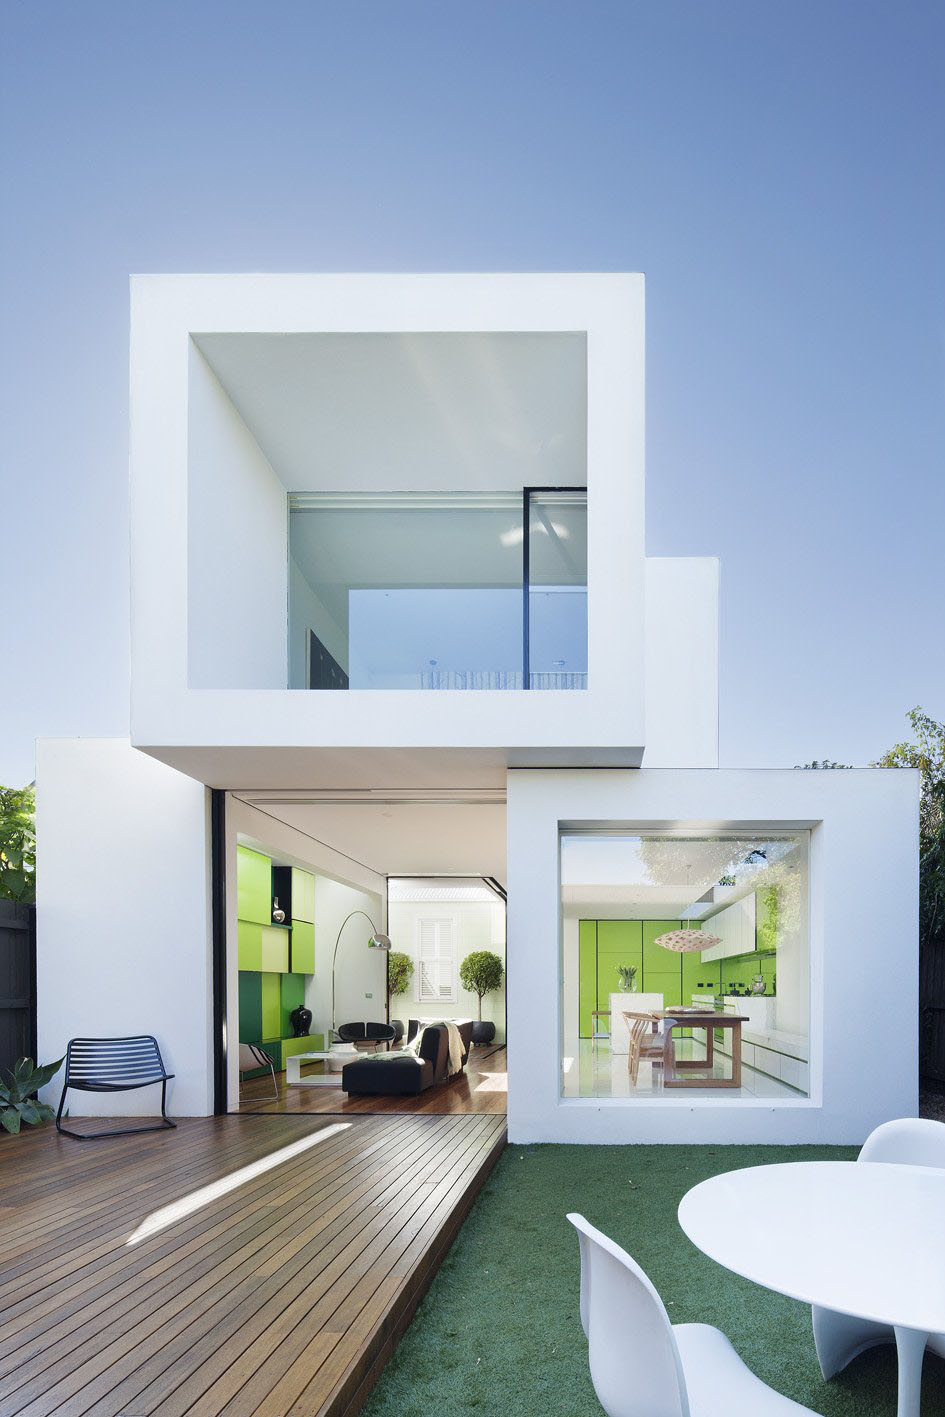 Minimalist Residential Architecture house extension links minimalist white cubes with victorian façade